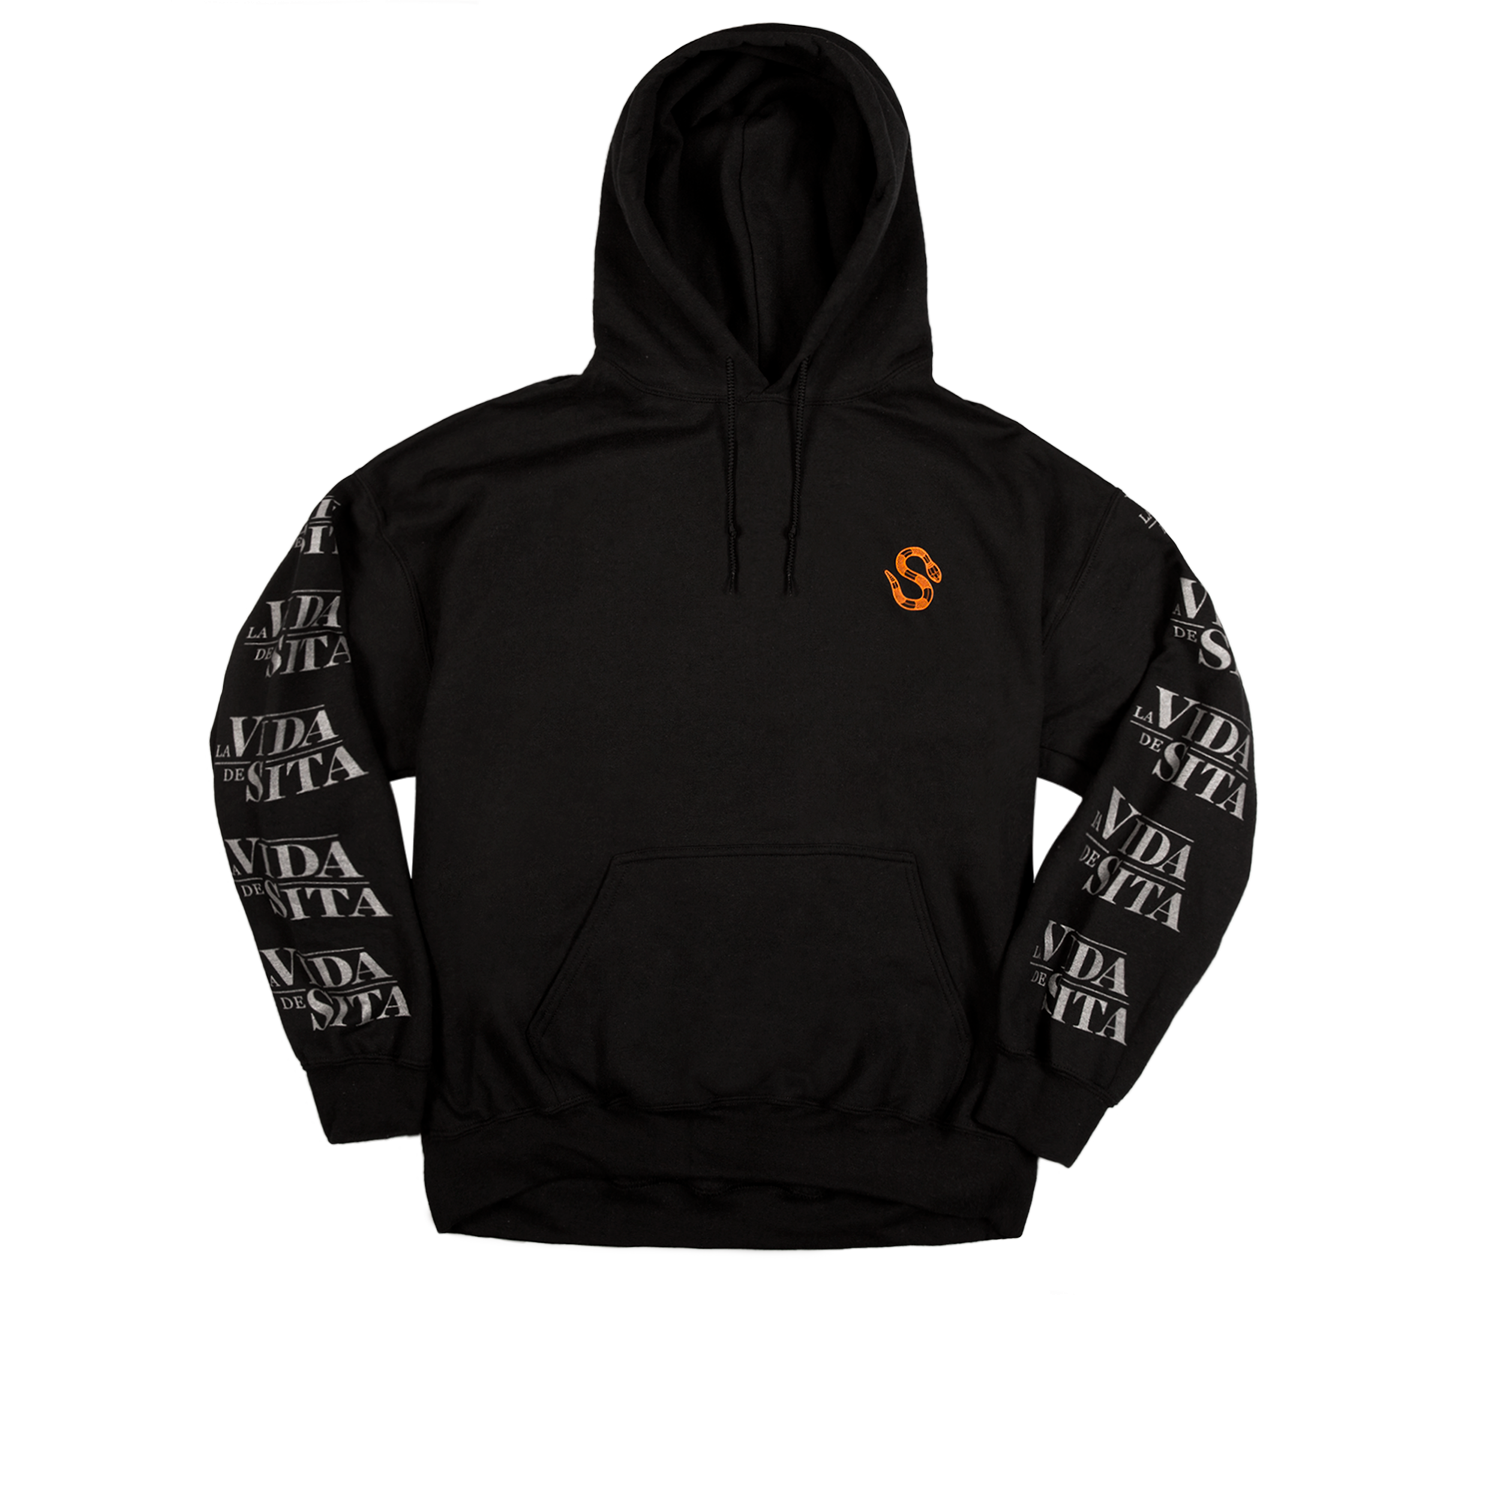 La Vida de Sita black hoodie  Black back printed